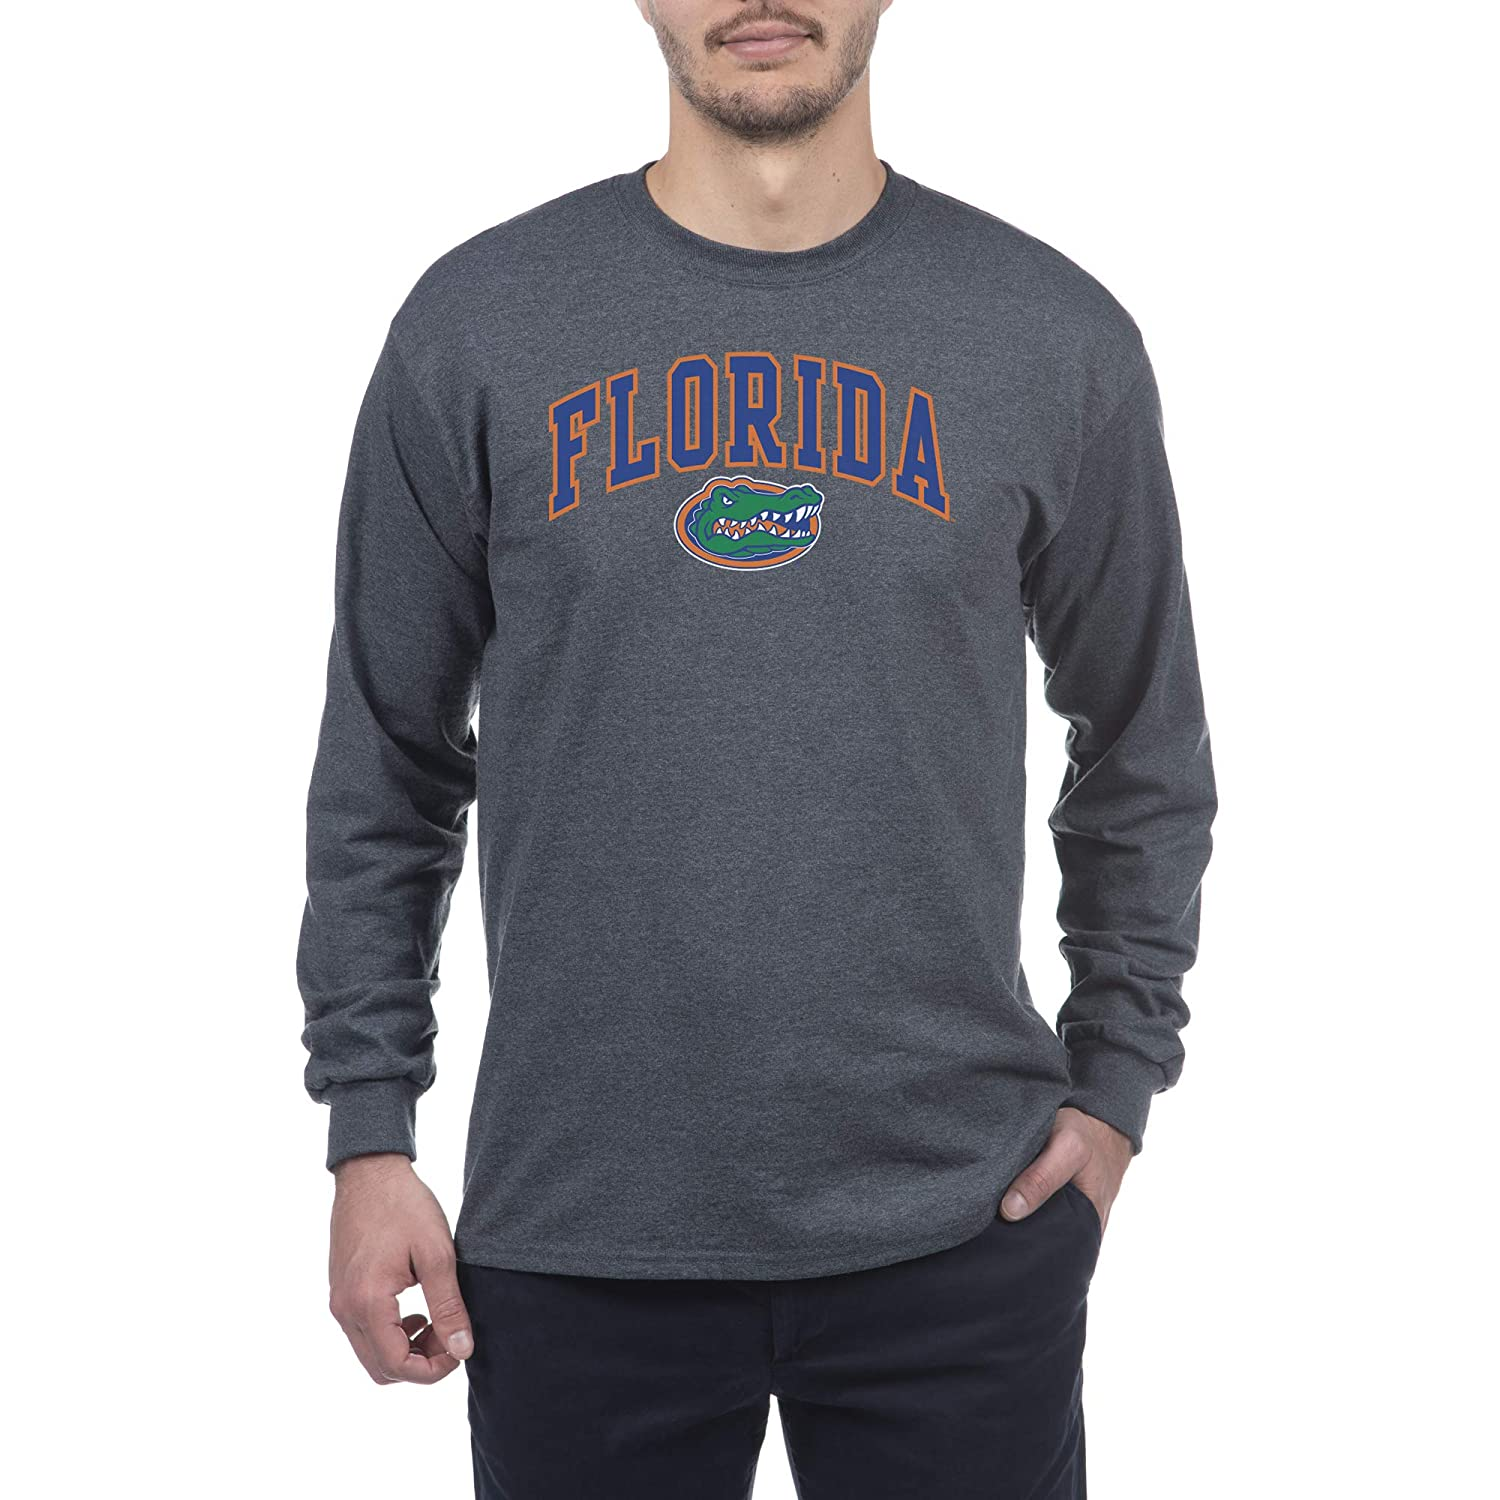 Elite Fan Shop NCAA Men's Long Sleeve Shirt Dark Charcoal Gray